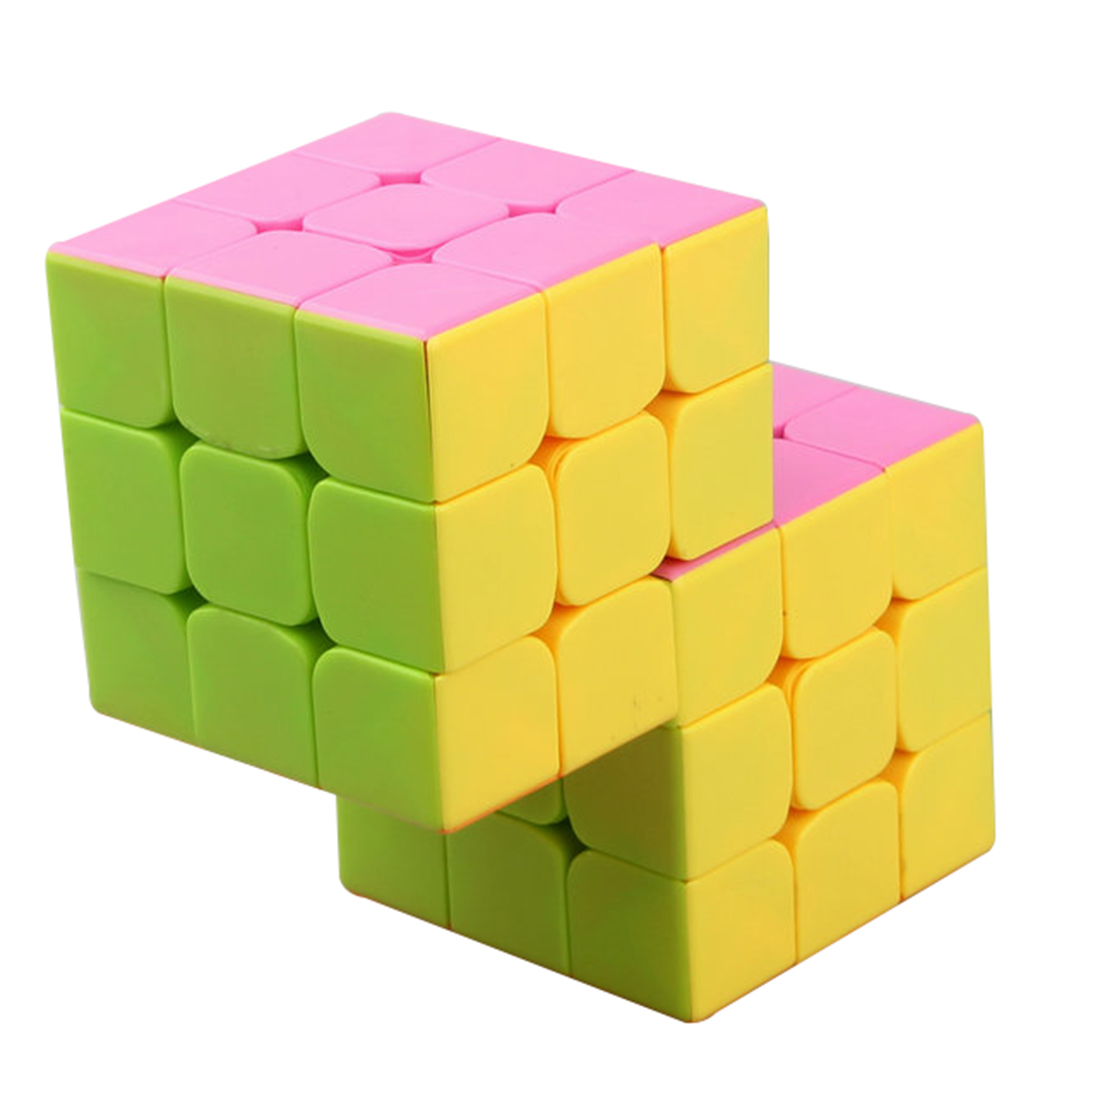 Toys & Hobbies Maze Magic Cube Through A Maze Speed Cube Kids Early Educational Puzzle Cube Toys Gifts For Childrens We Take Customers As Our Gods Magic Cubes